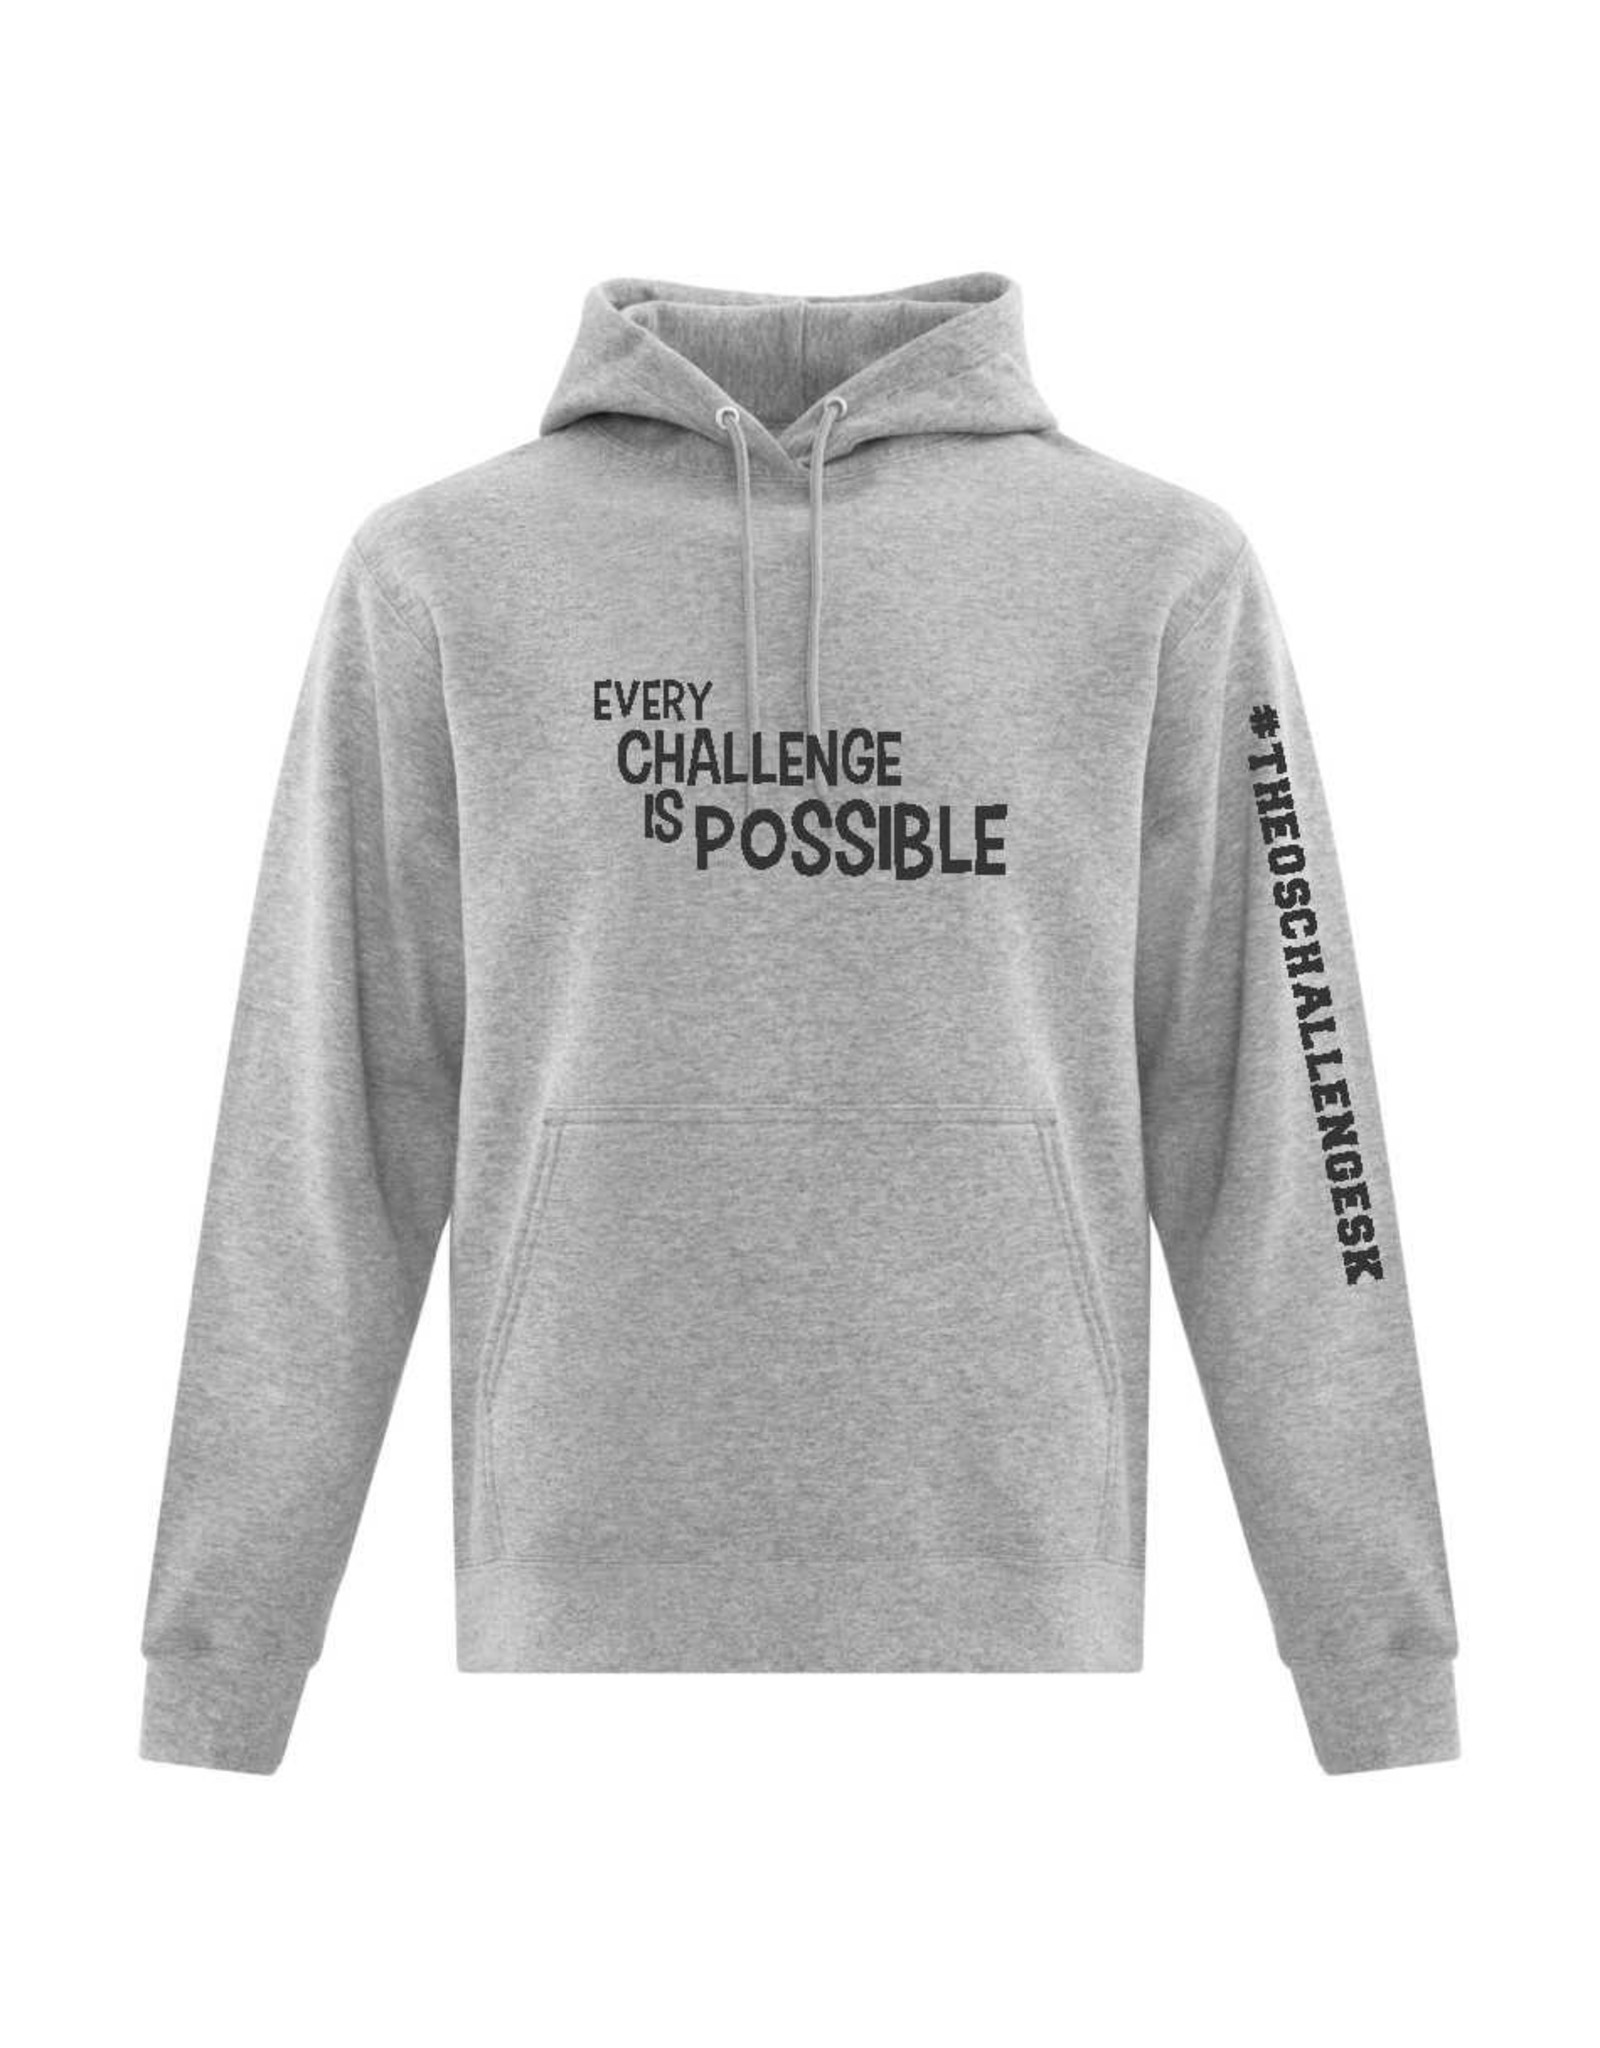 Theo's Every Challenge is Possible Hoodie